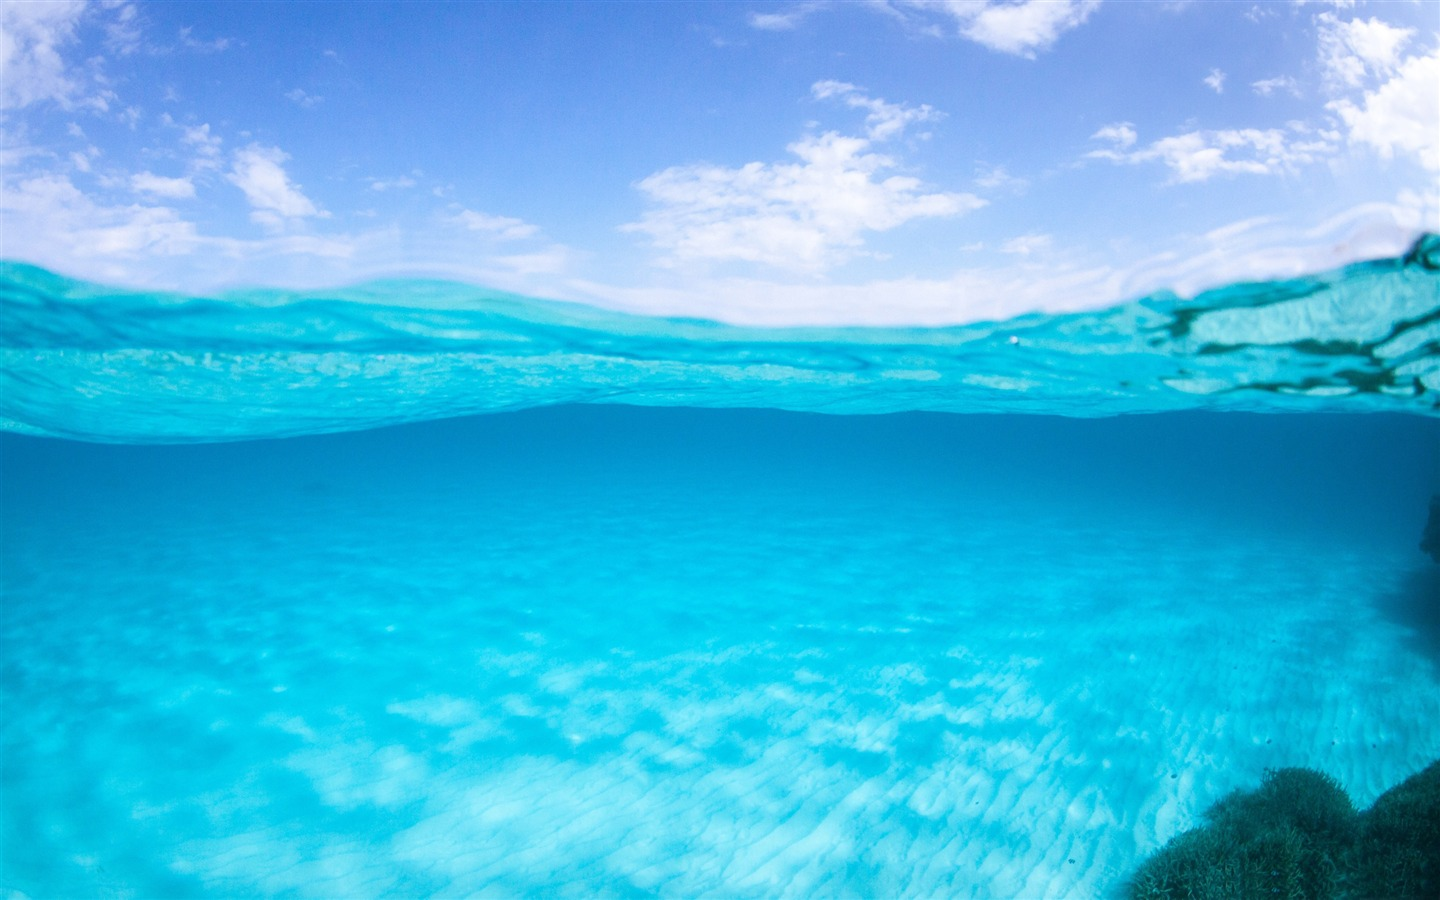 half underwater-ocean scenery hd wallpaper preview | 10wallpaper